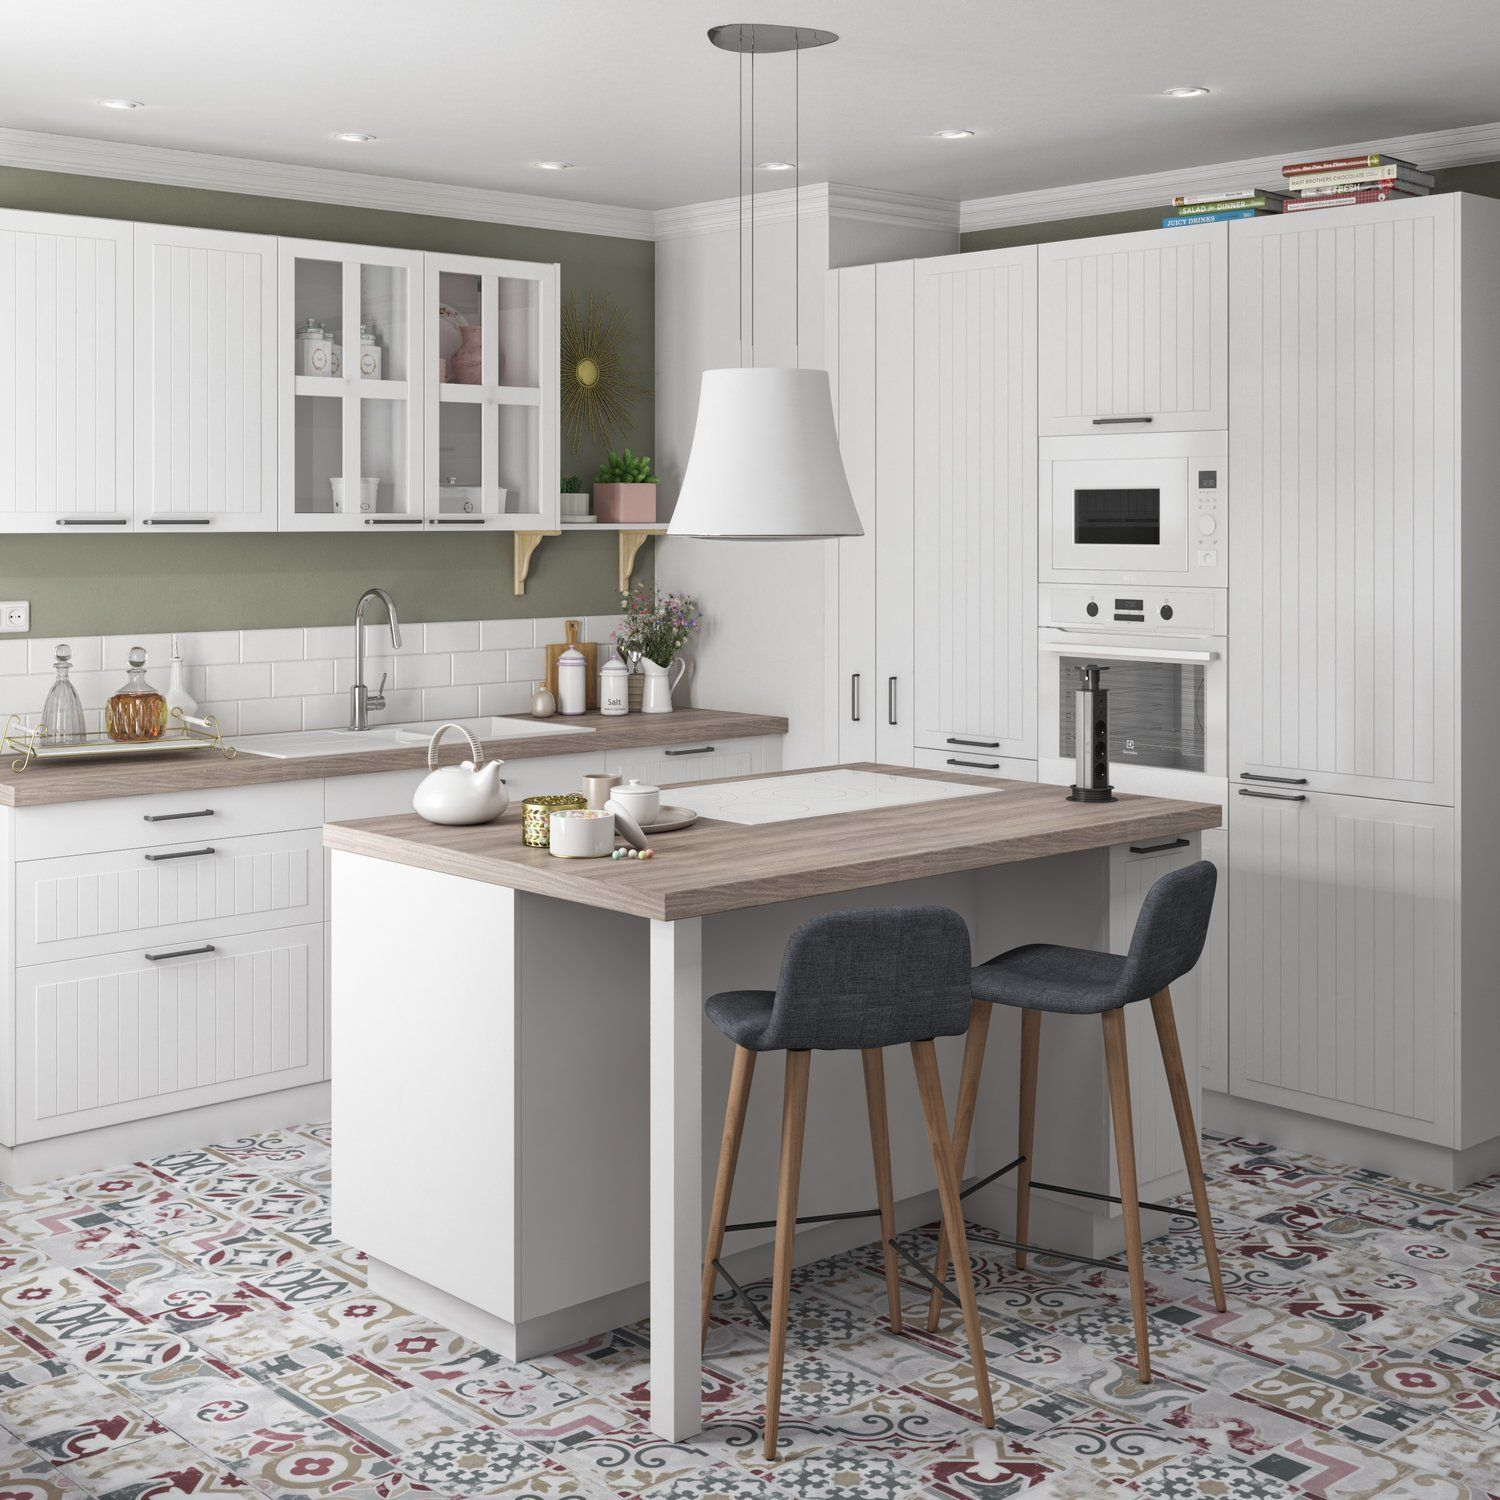 What Style To Choose For Your New Kitchen Deco Planet At Homes World In 2020 New Kitchen